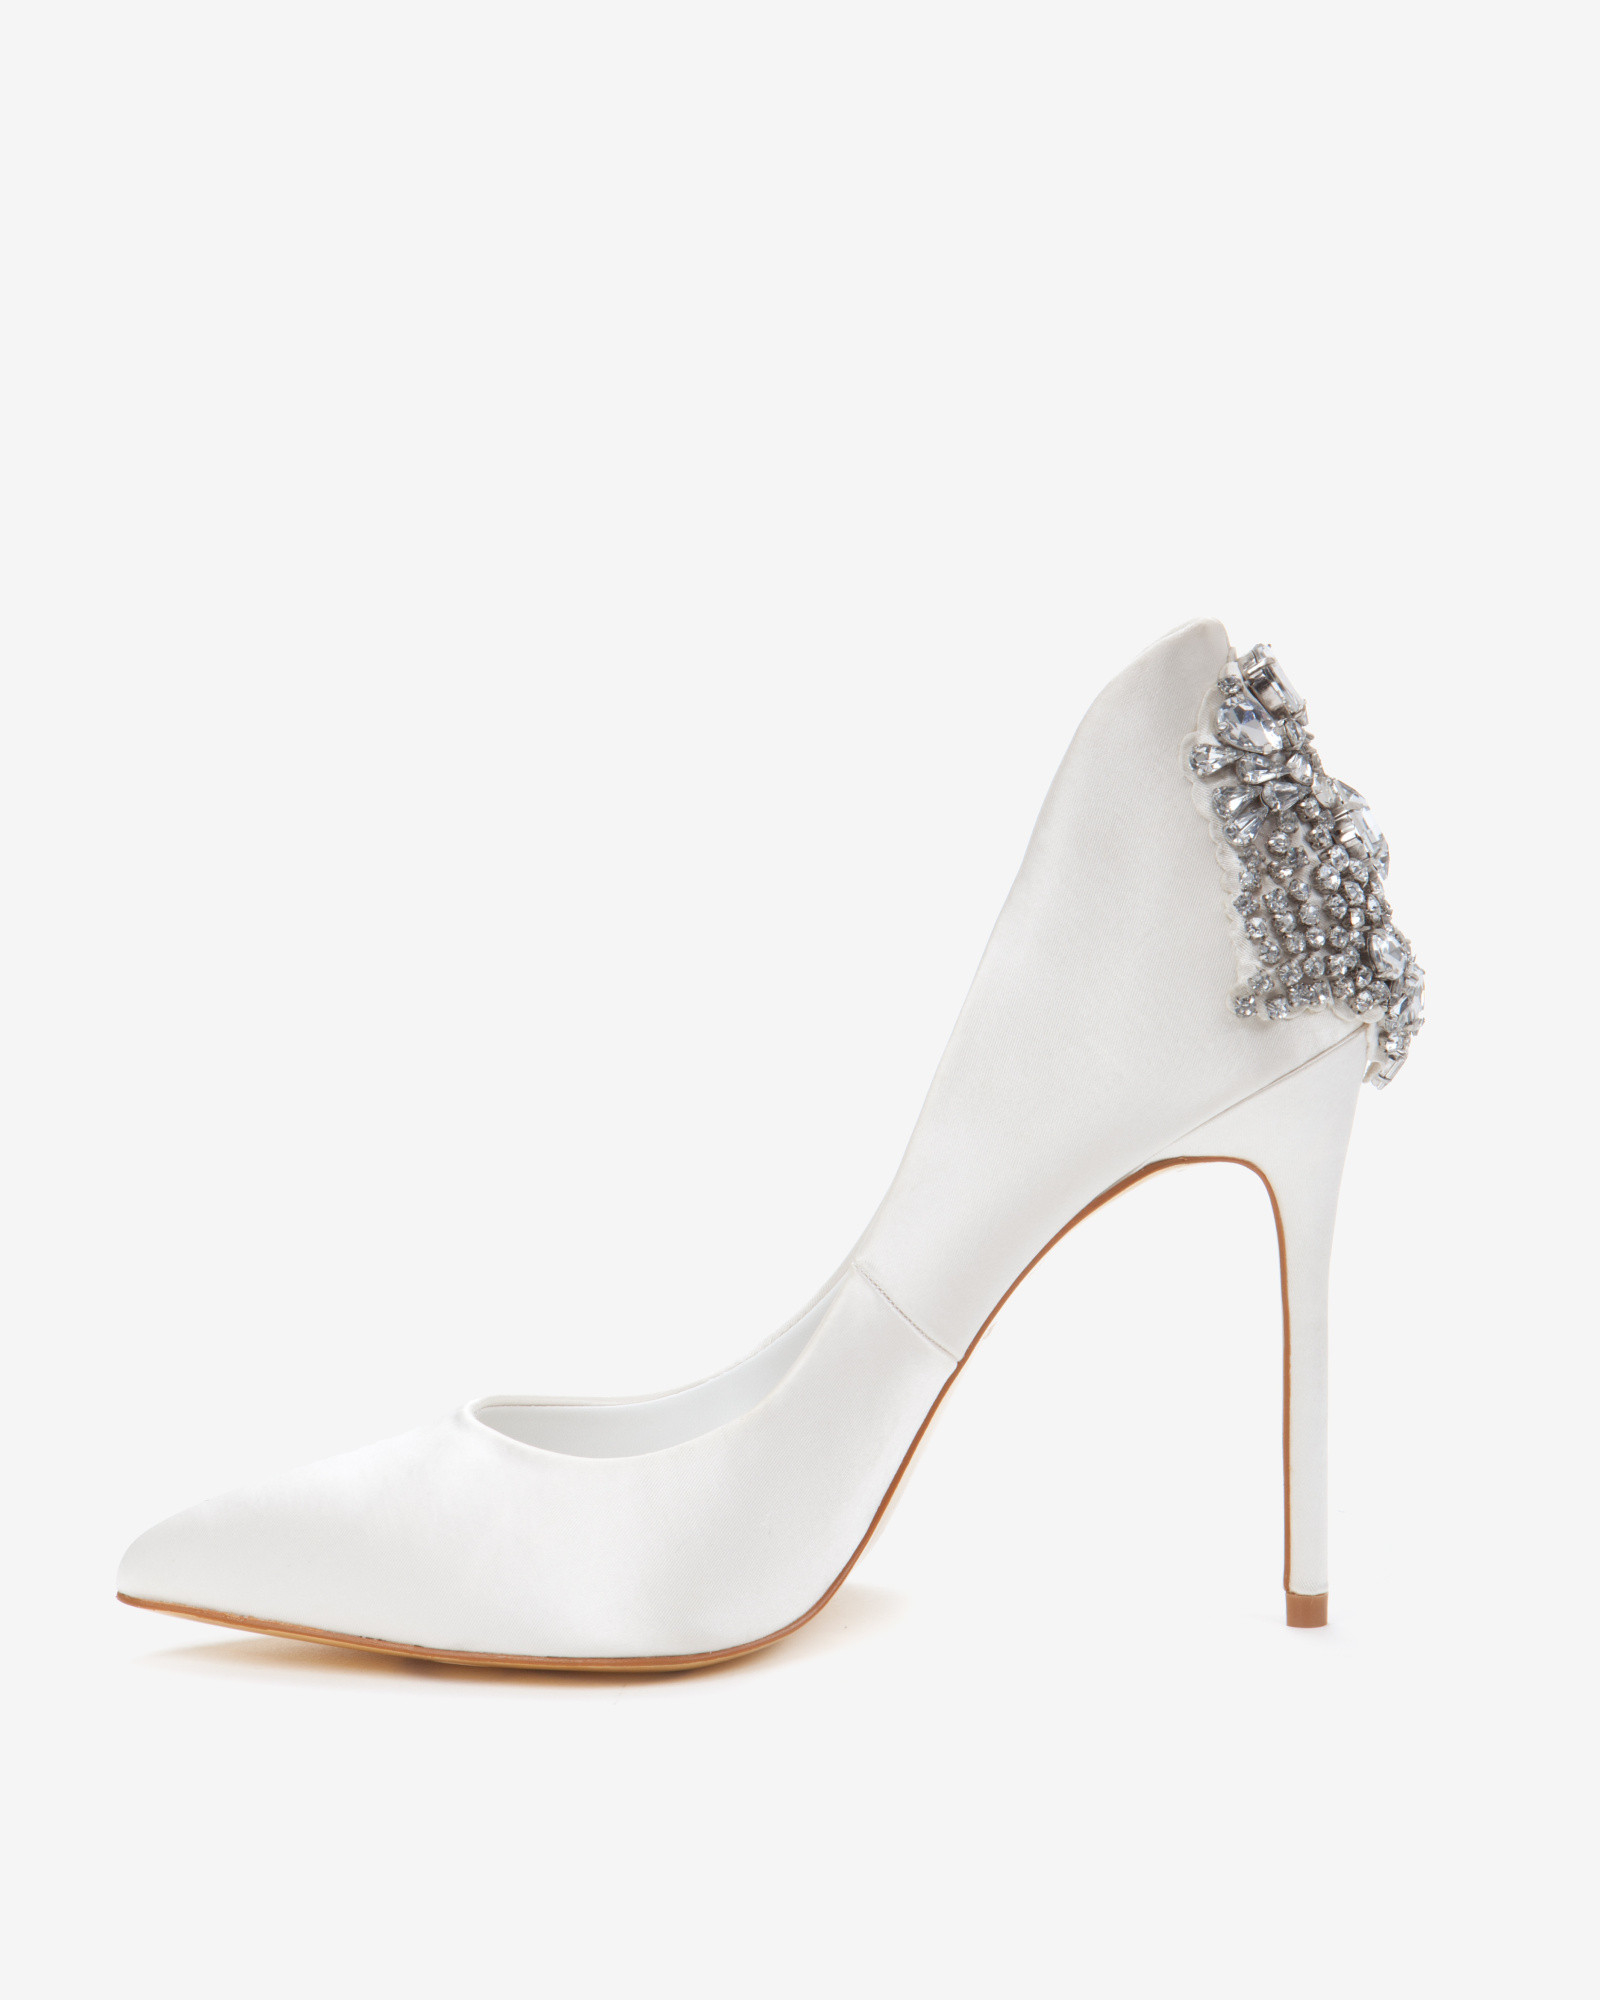 2e67679db Lyst - Ted Baker Embellished Court Shoes in White